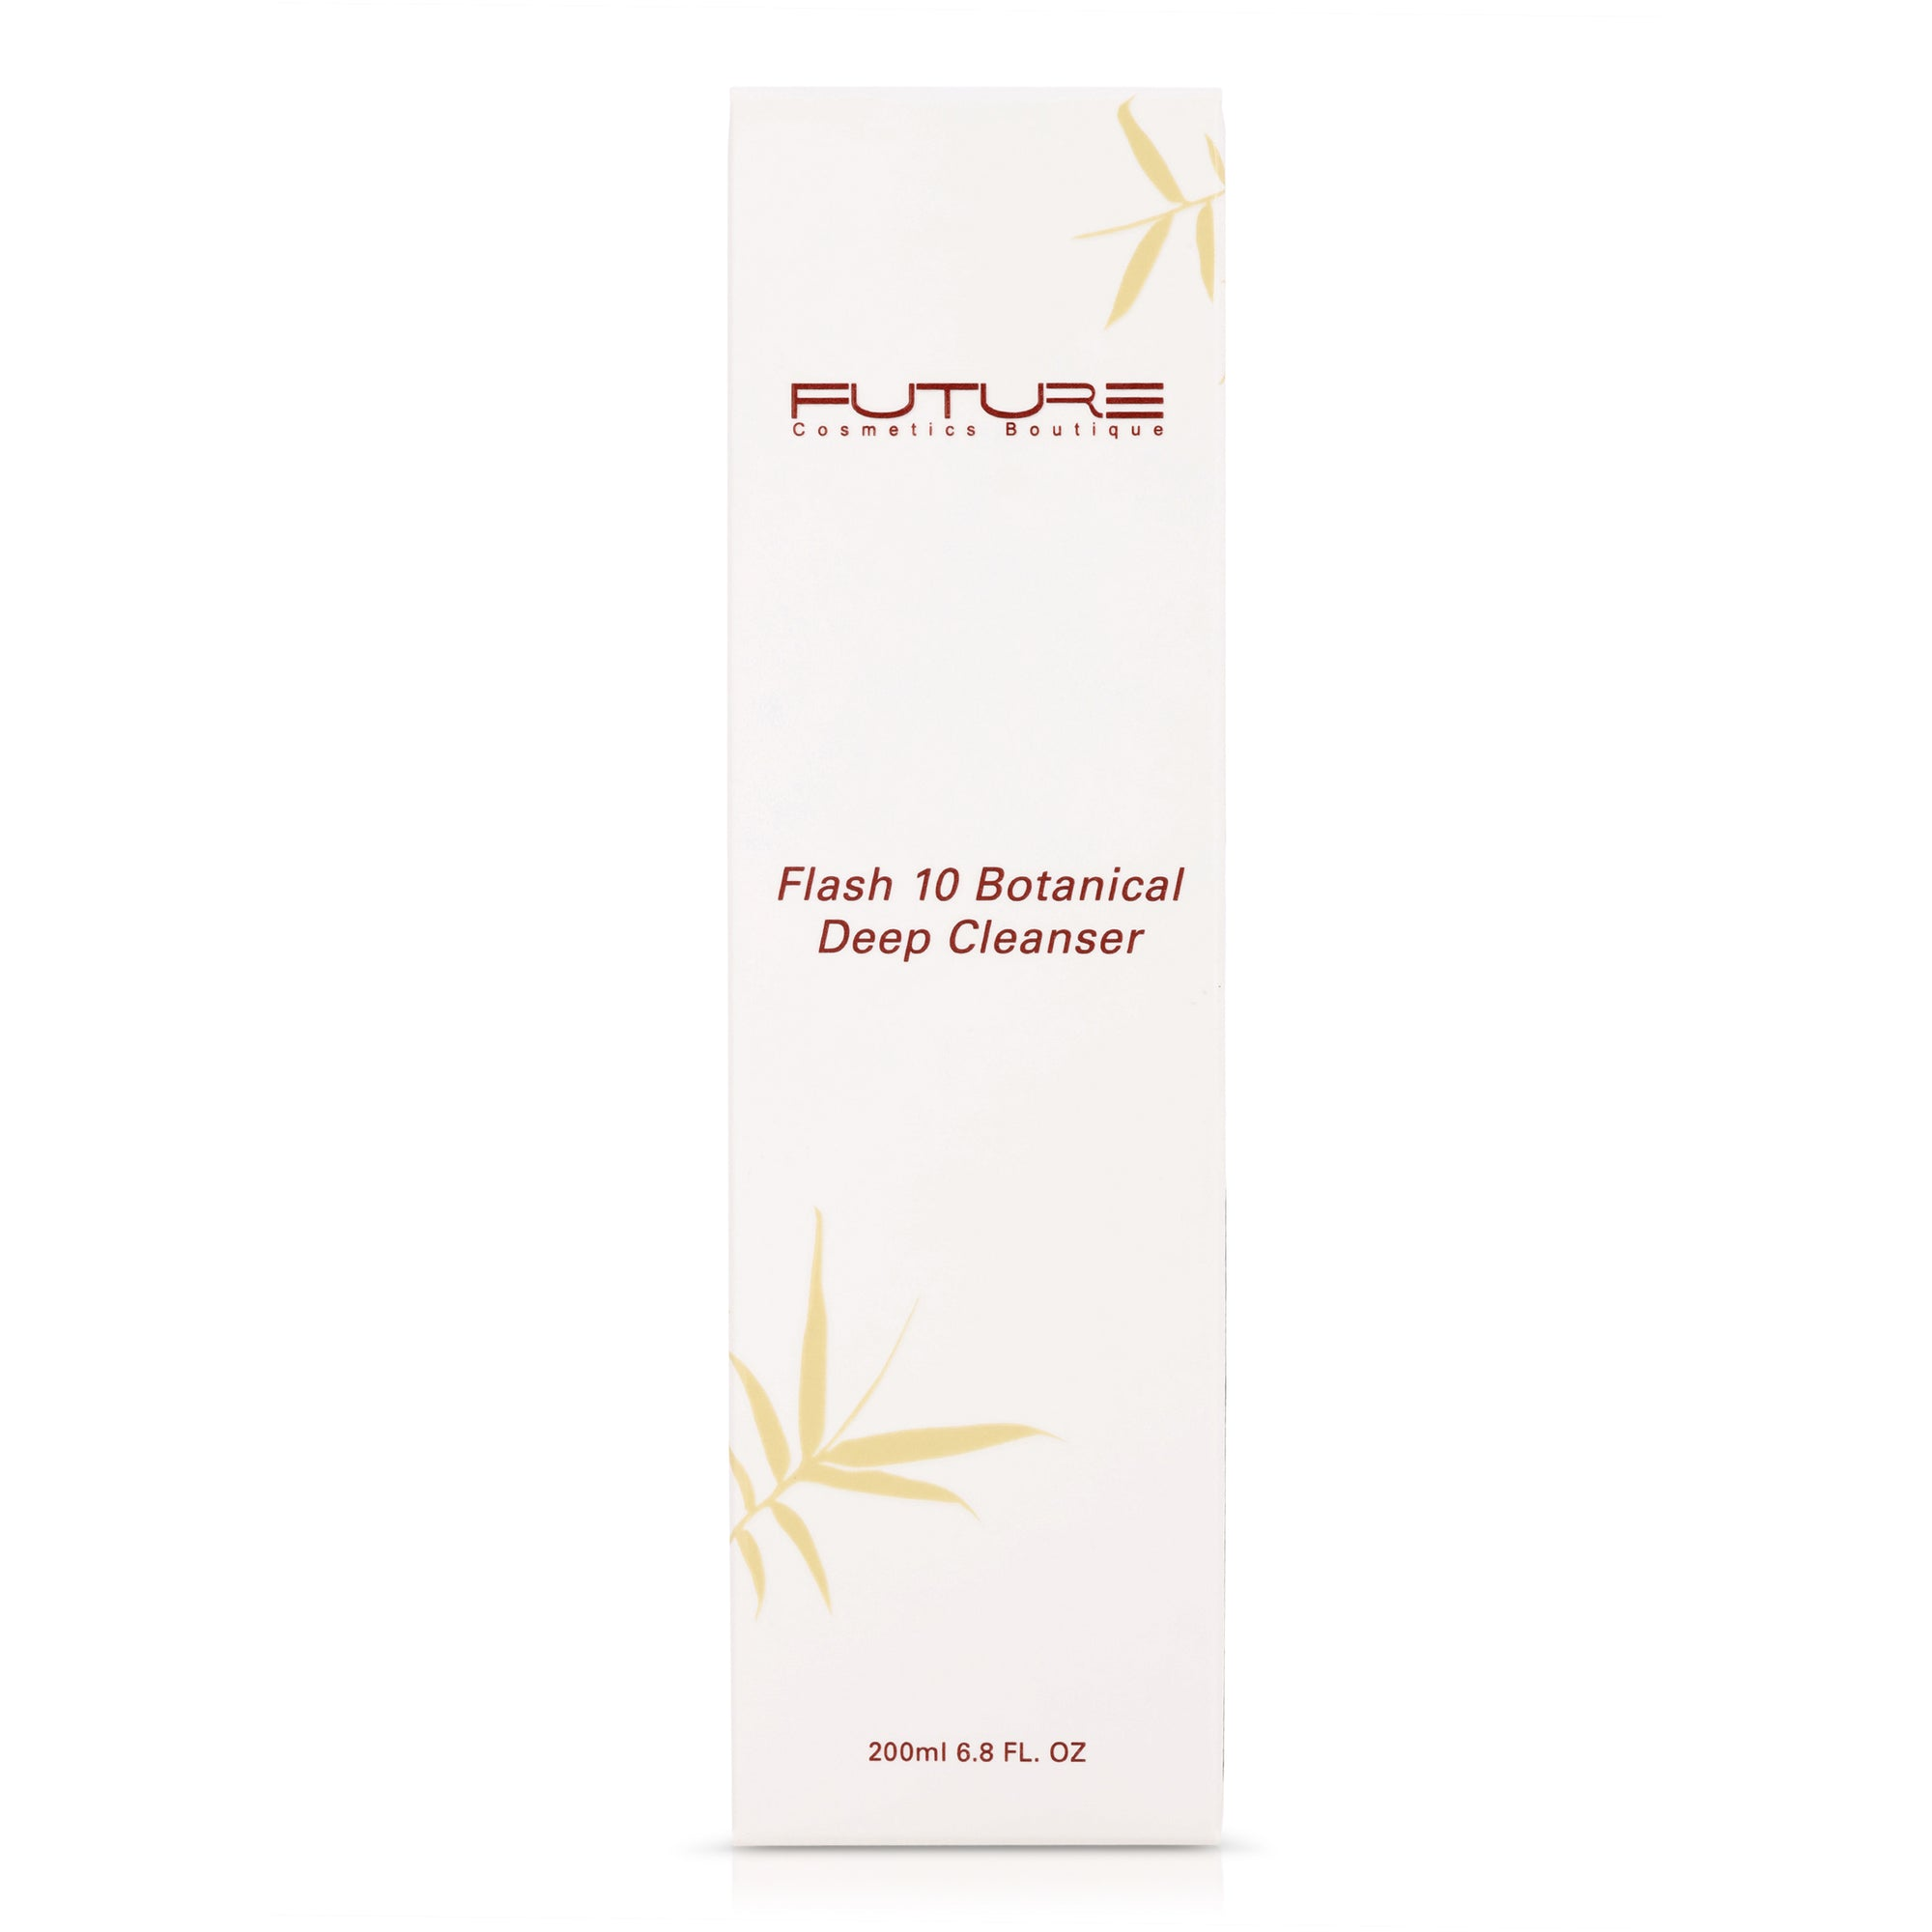 FUTURE - Flash 10 – Botanical Deep Cleanser 6.8 FL. OZ.